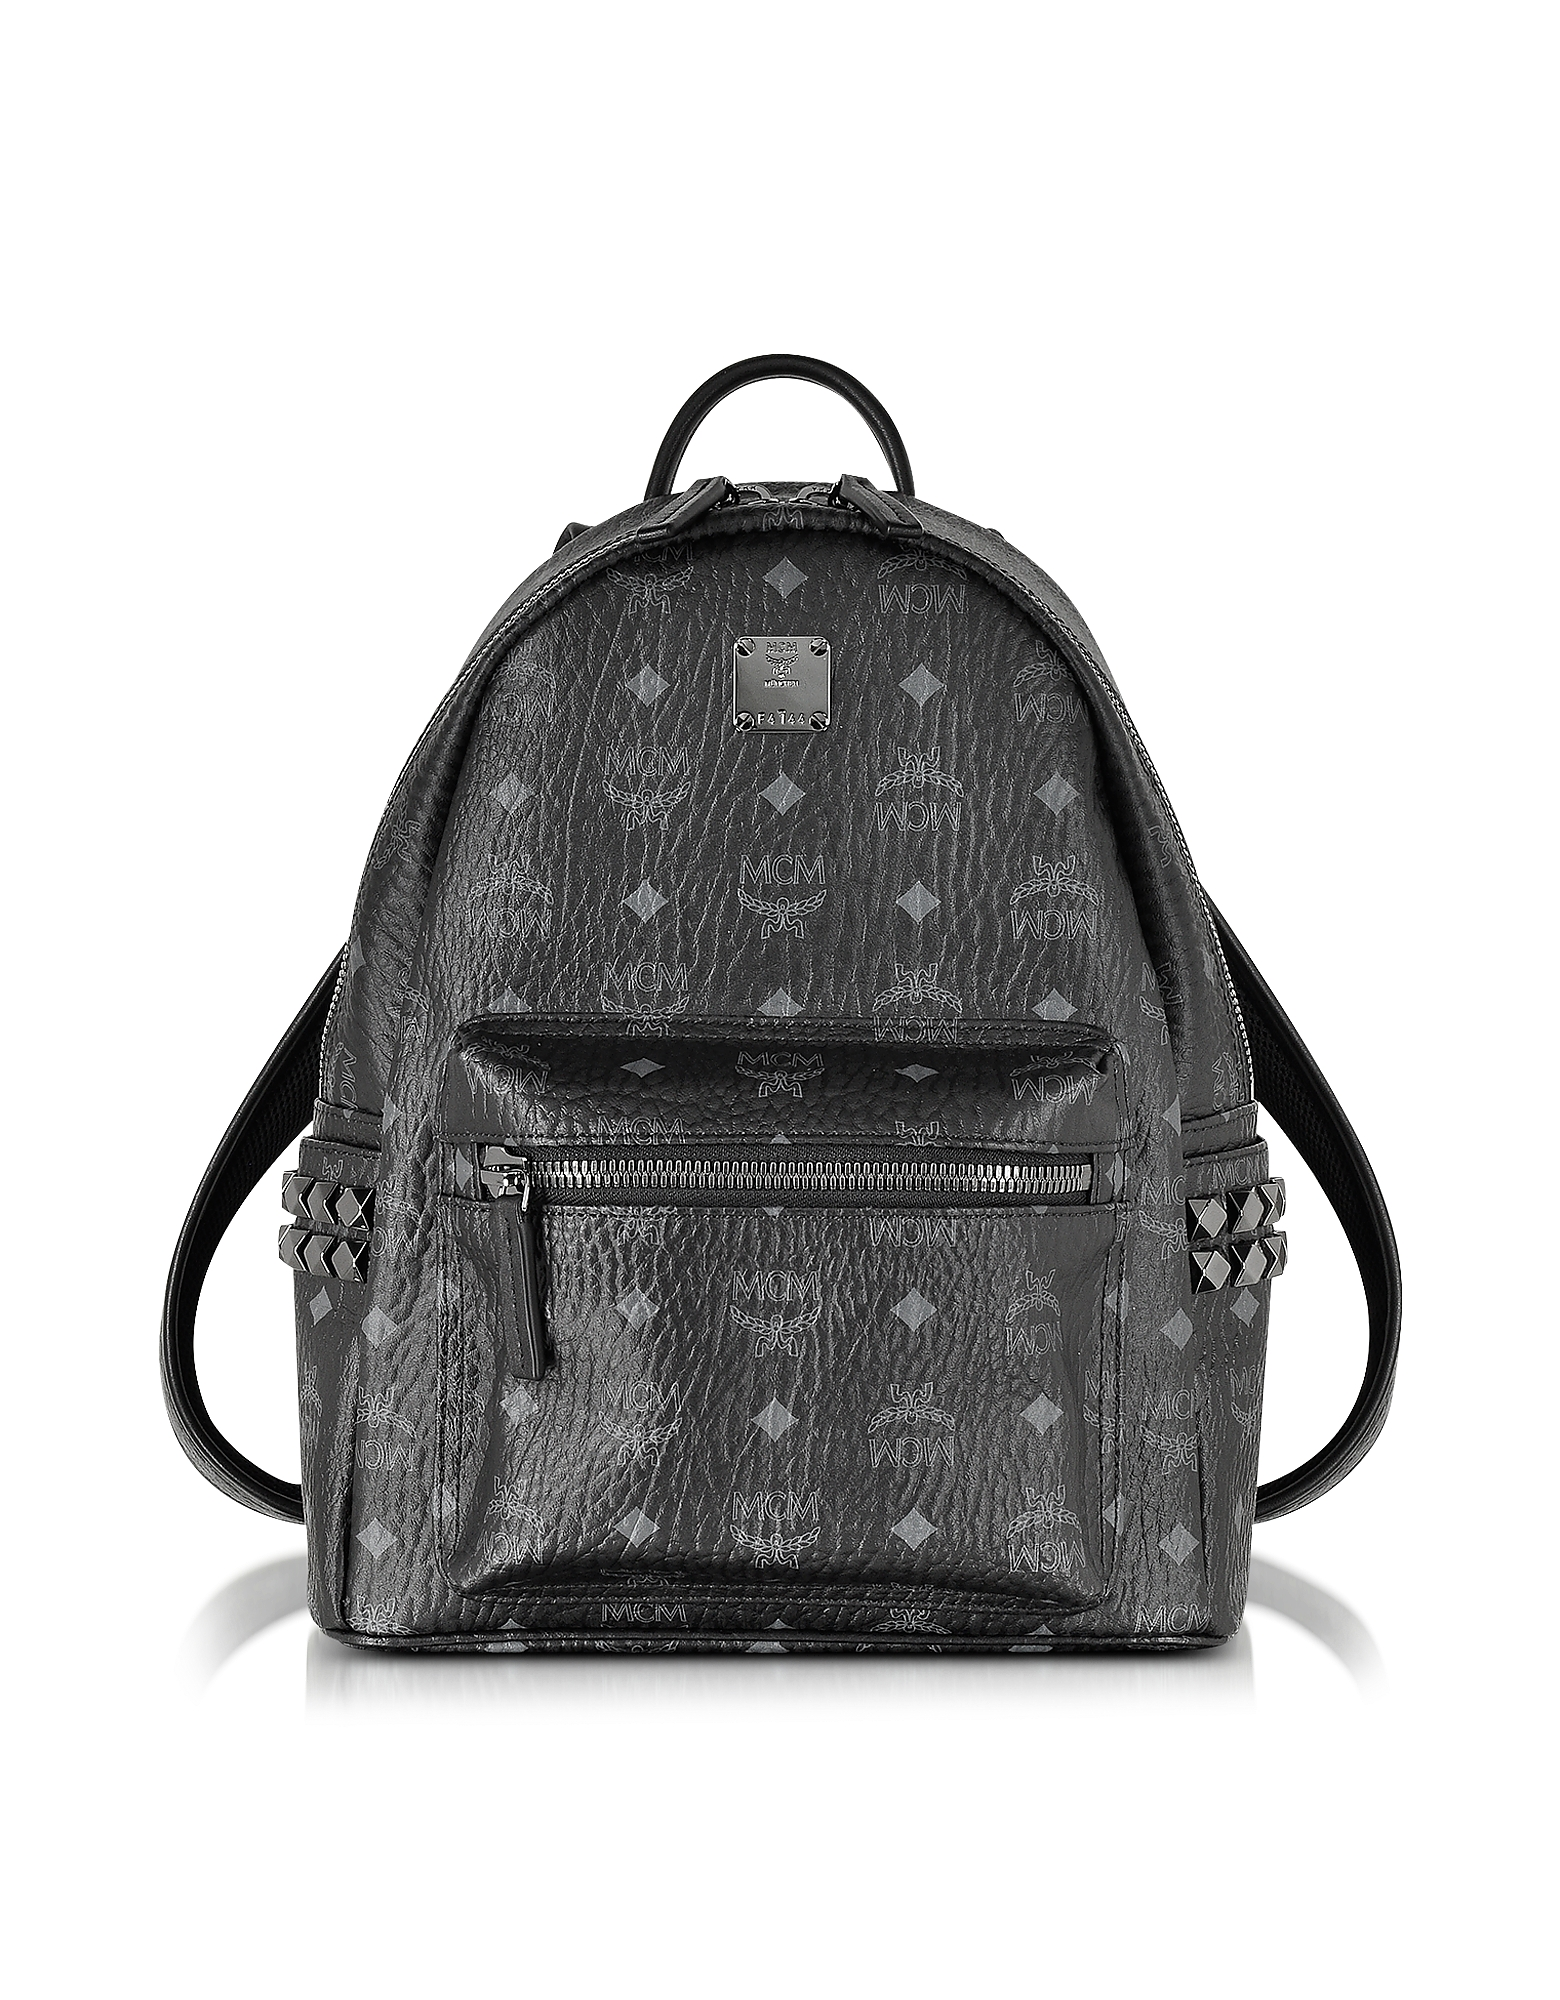 MCM Handbags, Stark Black Small Backpack